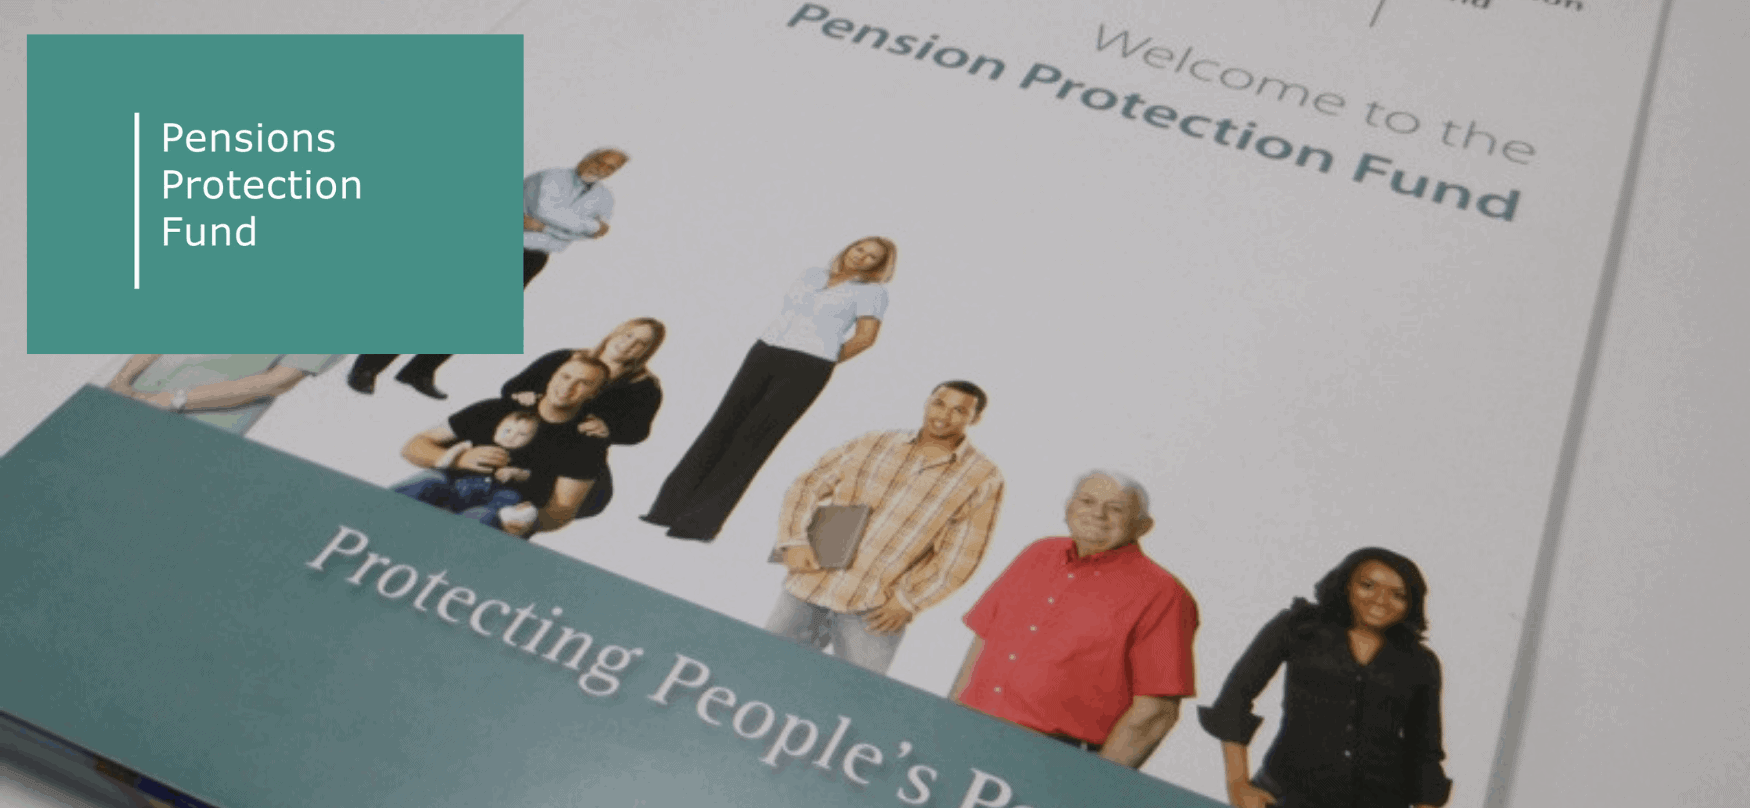 PPF - pension-protection-fund-logo